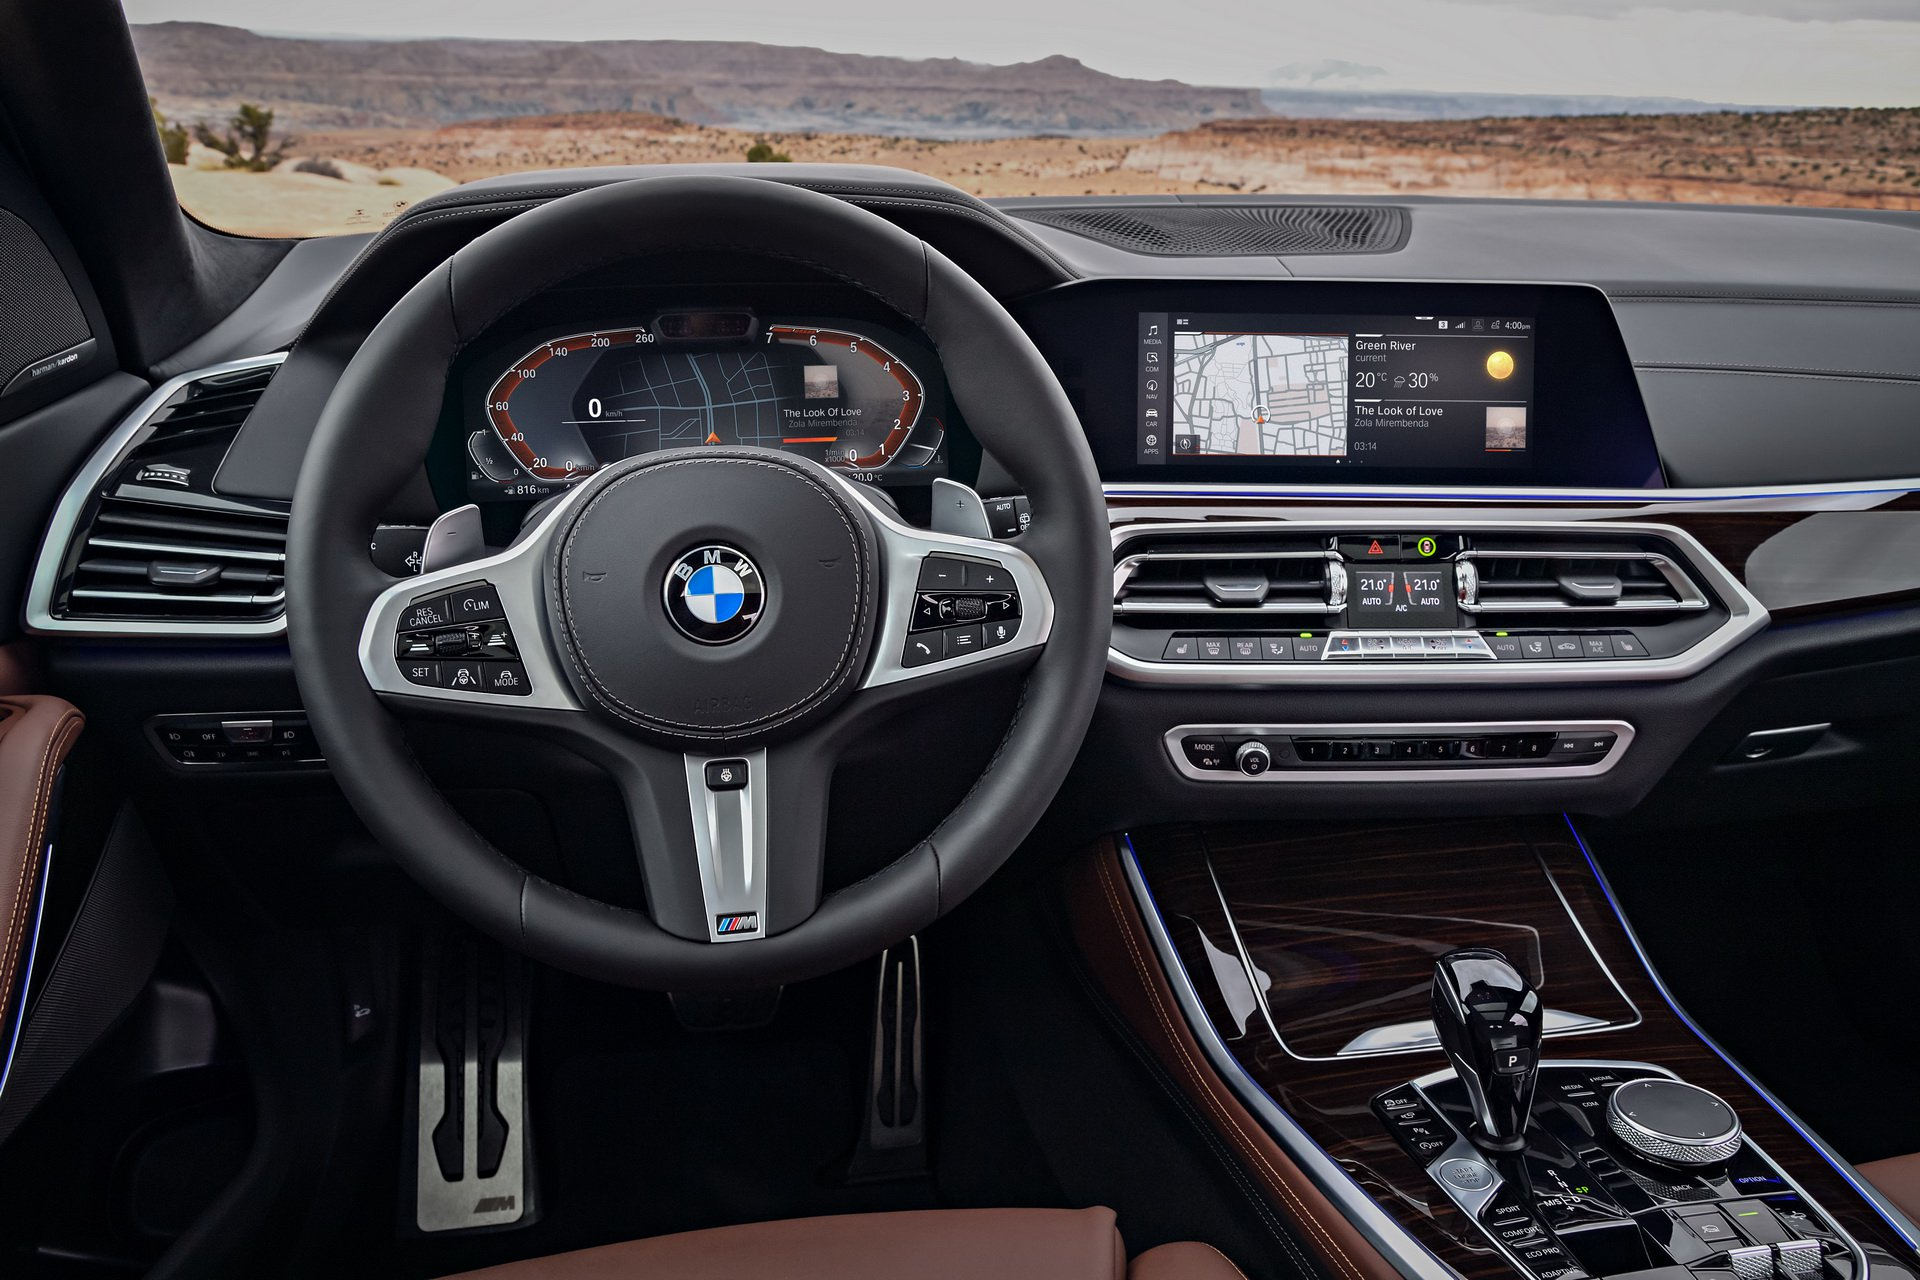 d03d6390-bmw-digital-cockpit-01.jpg